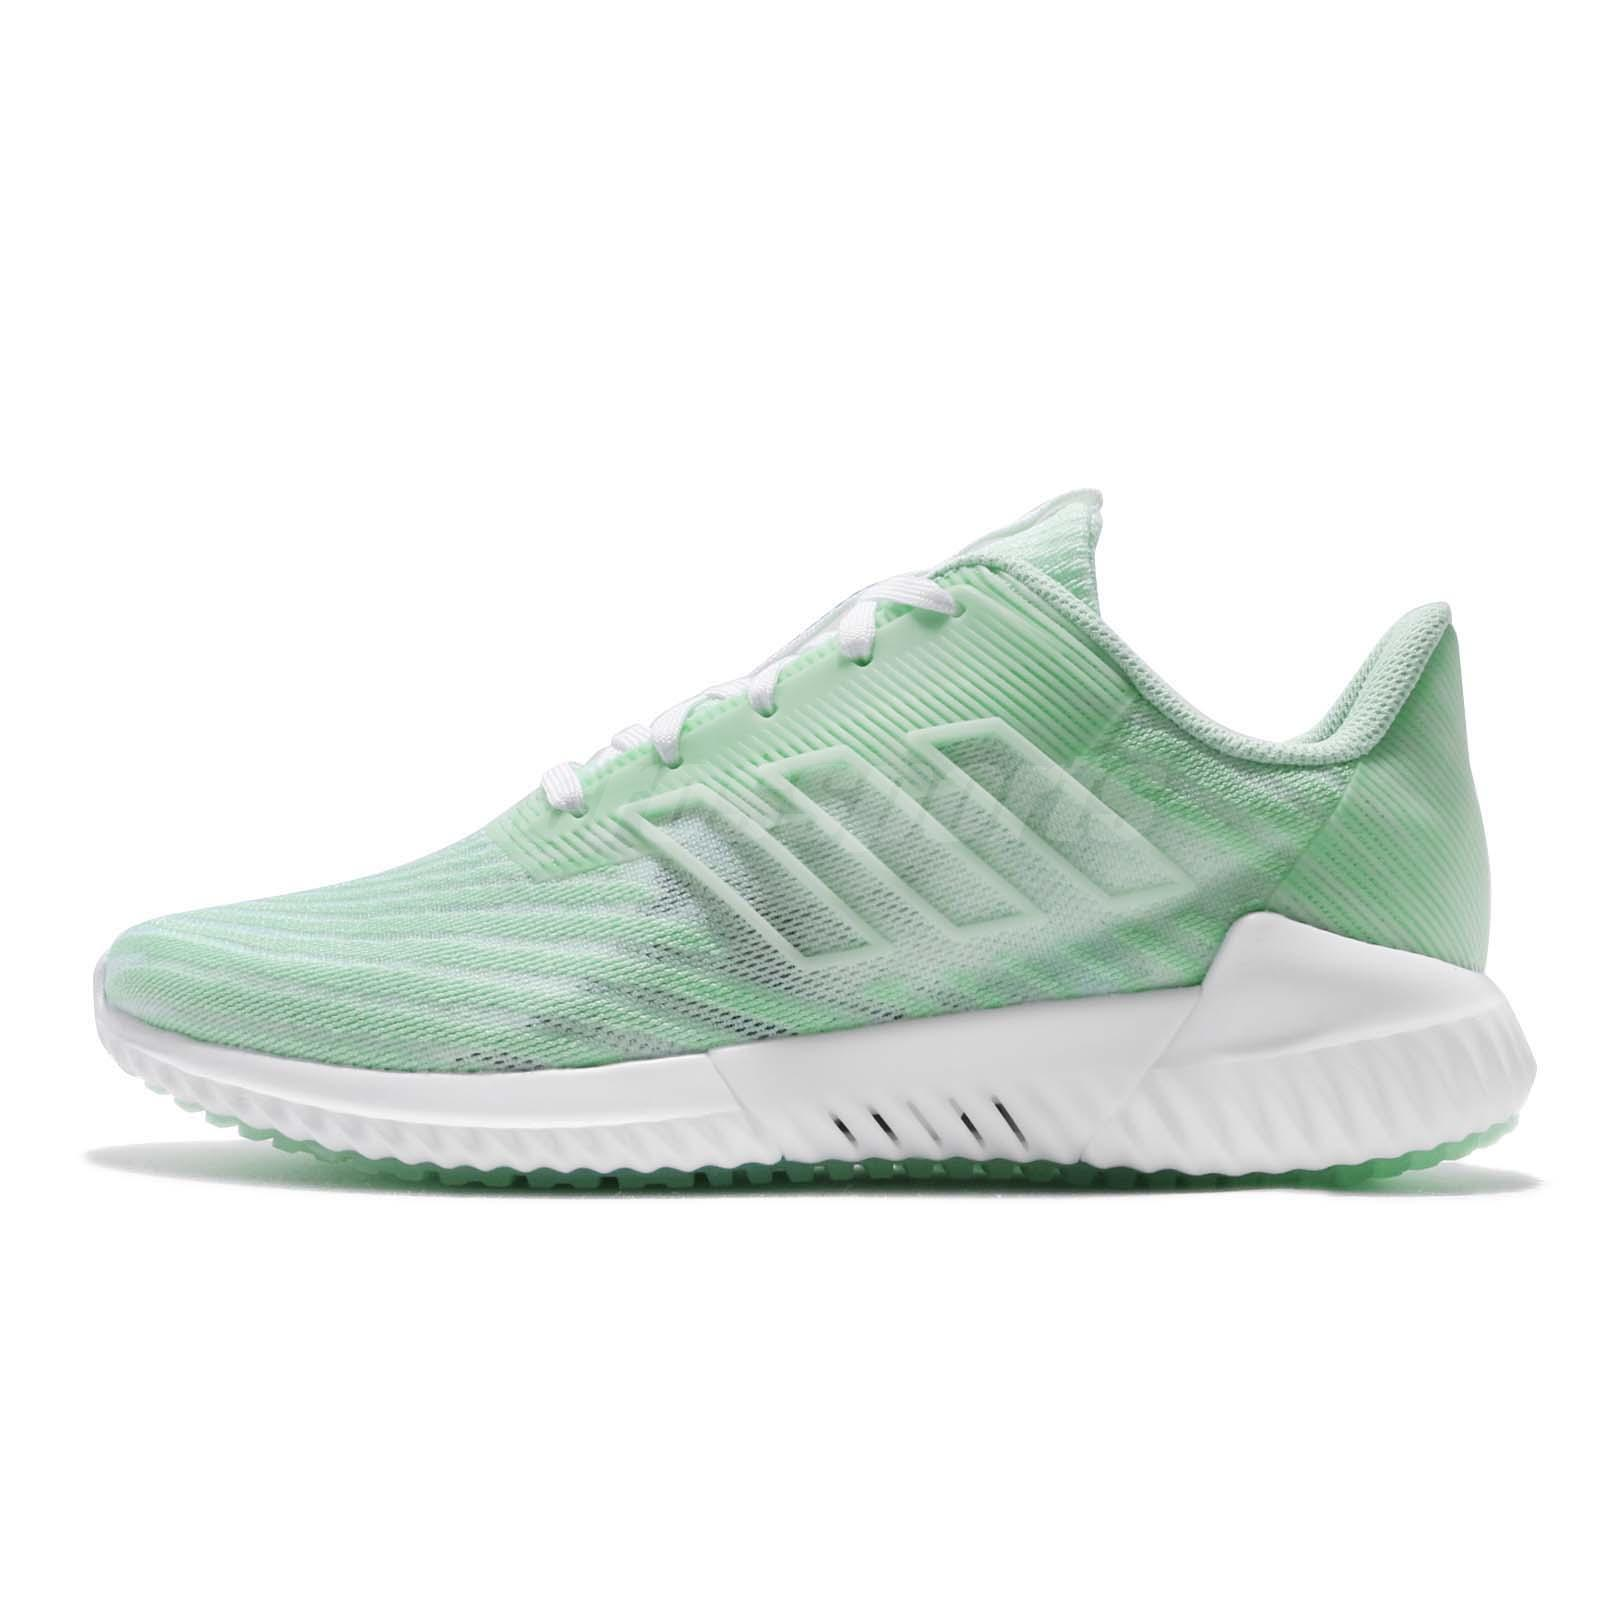 finest selection 70d02 0bc49 Details about adidas Climacool 2.0 W Green White Women Running Training  Shoes Sneakers B75845